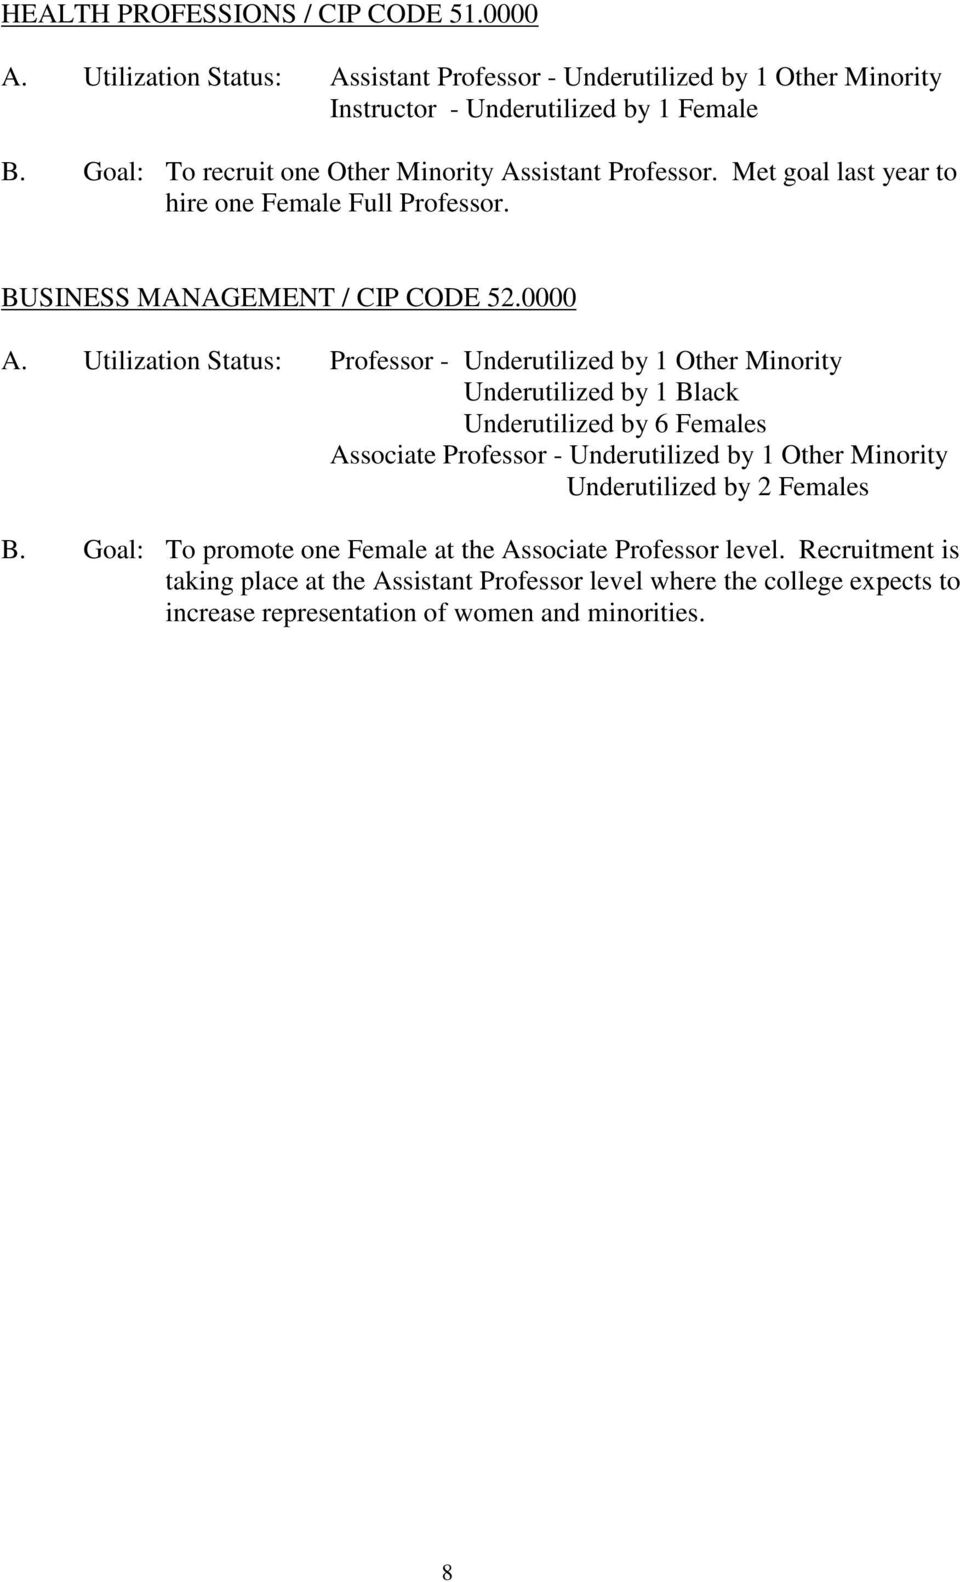 Utilization Status: Professor - Underutilized by 1 Other Minority Underutilized by 1 Black Underutilized by 6 Females Associate Professor - Underutilized by 1 Other Minority